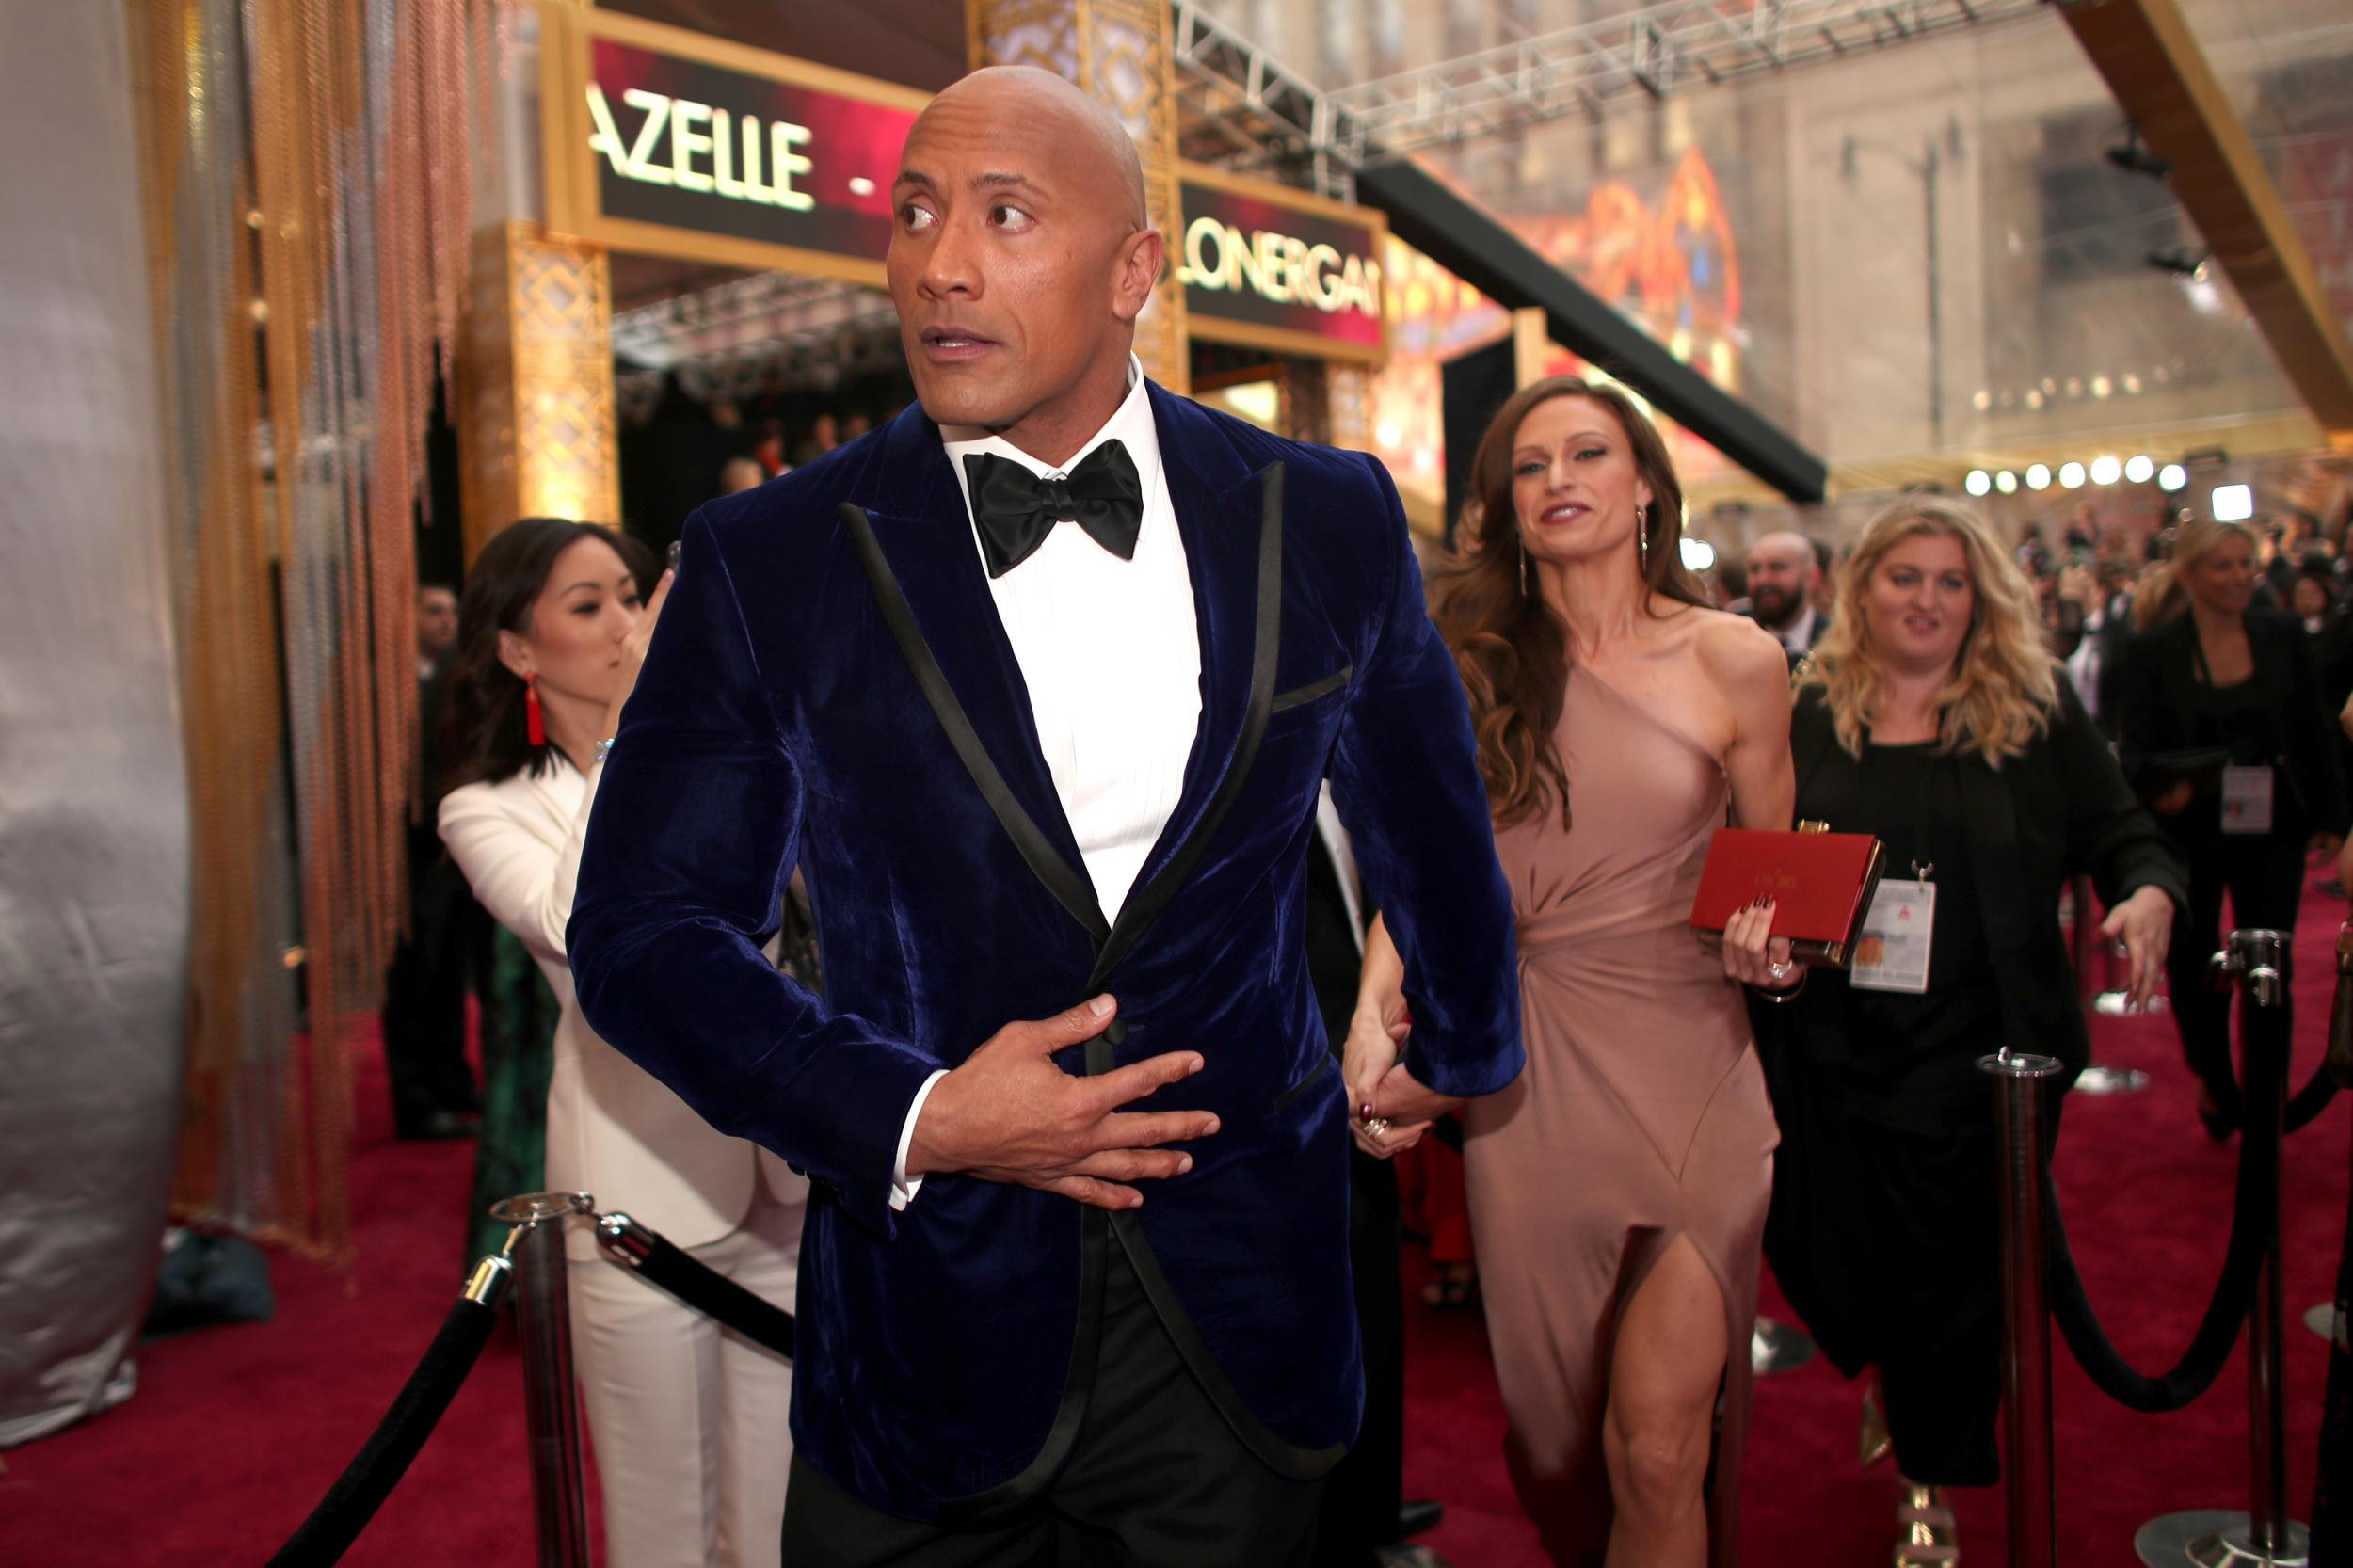 Dwayne johnson latest news breaking stories and comment the the two actors who broke from tradition to meet fans at the oscars m4hsunfo